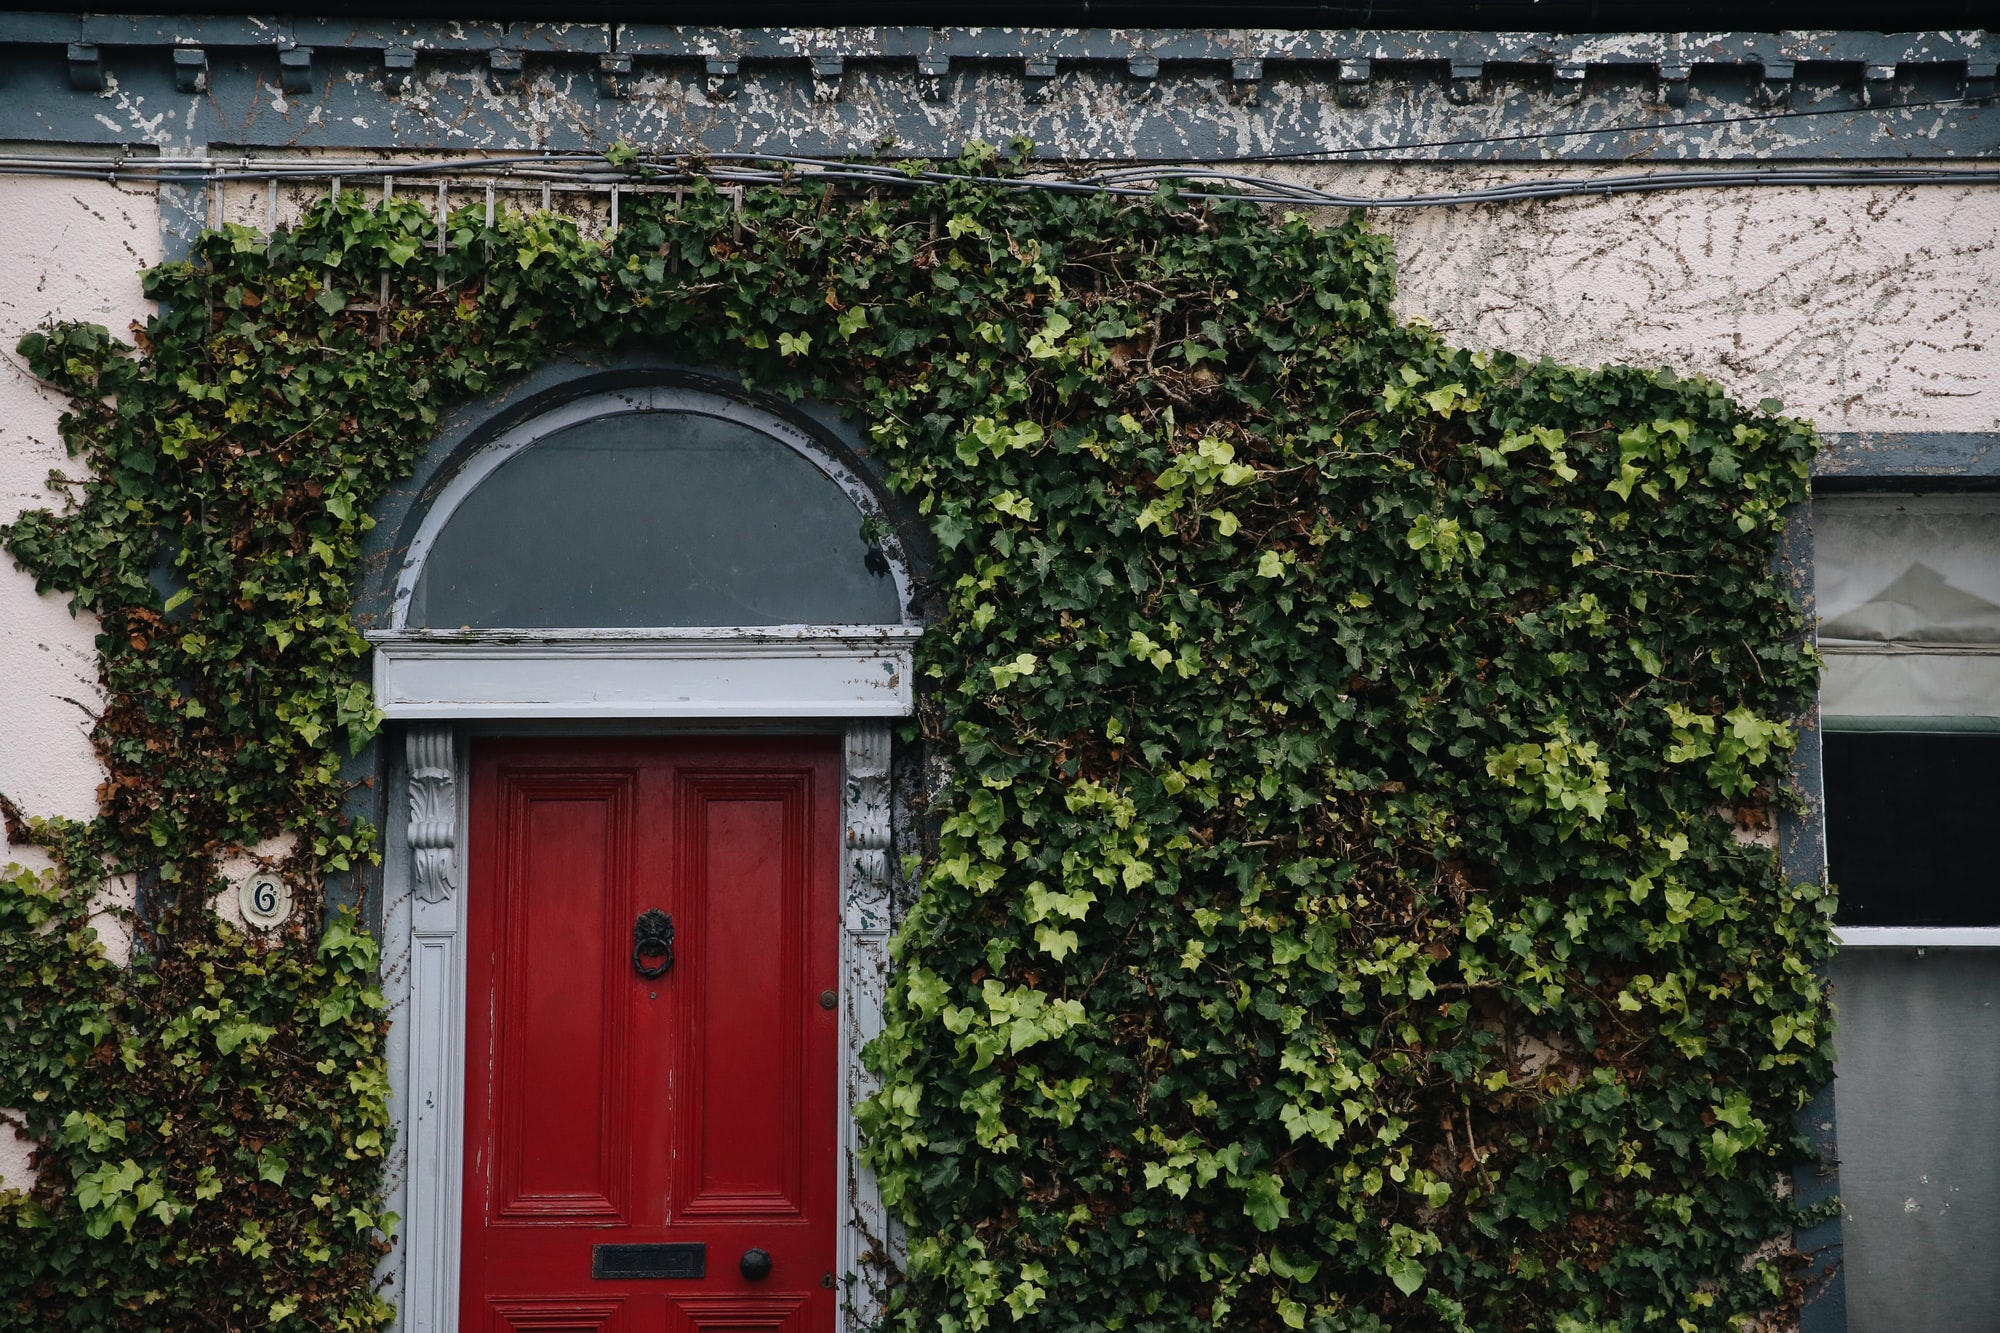 Red door in Dublin, Ireland